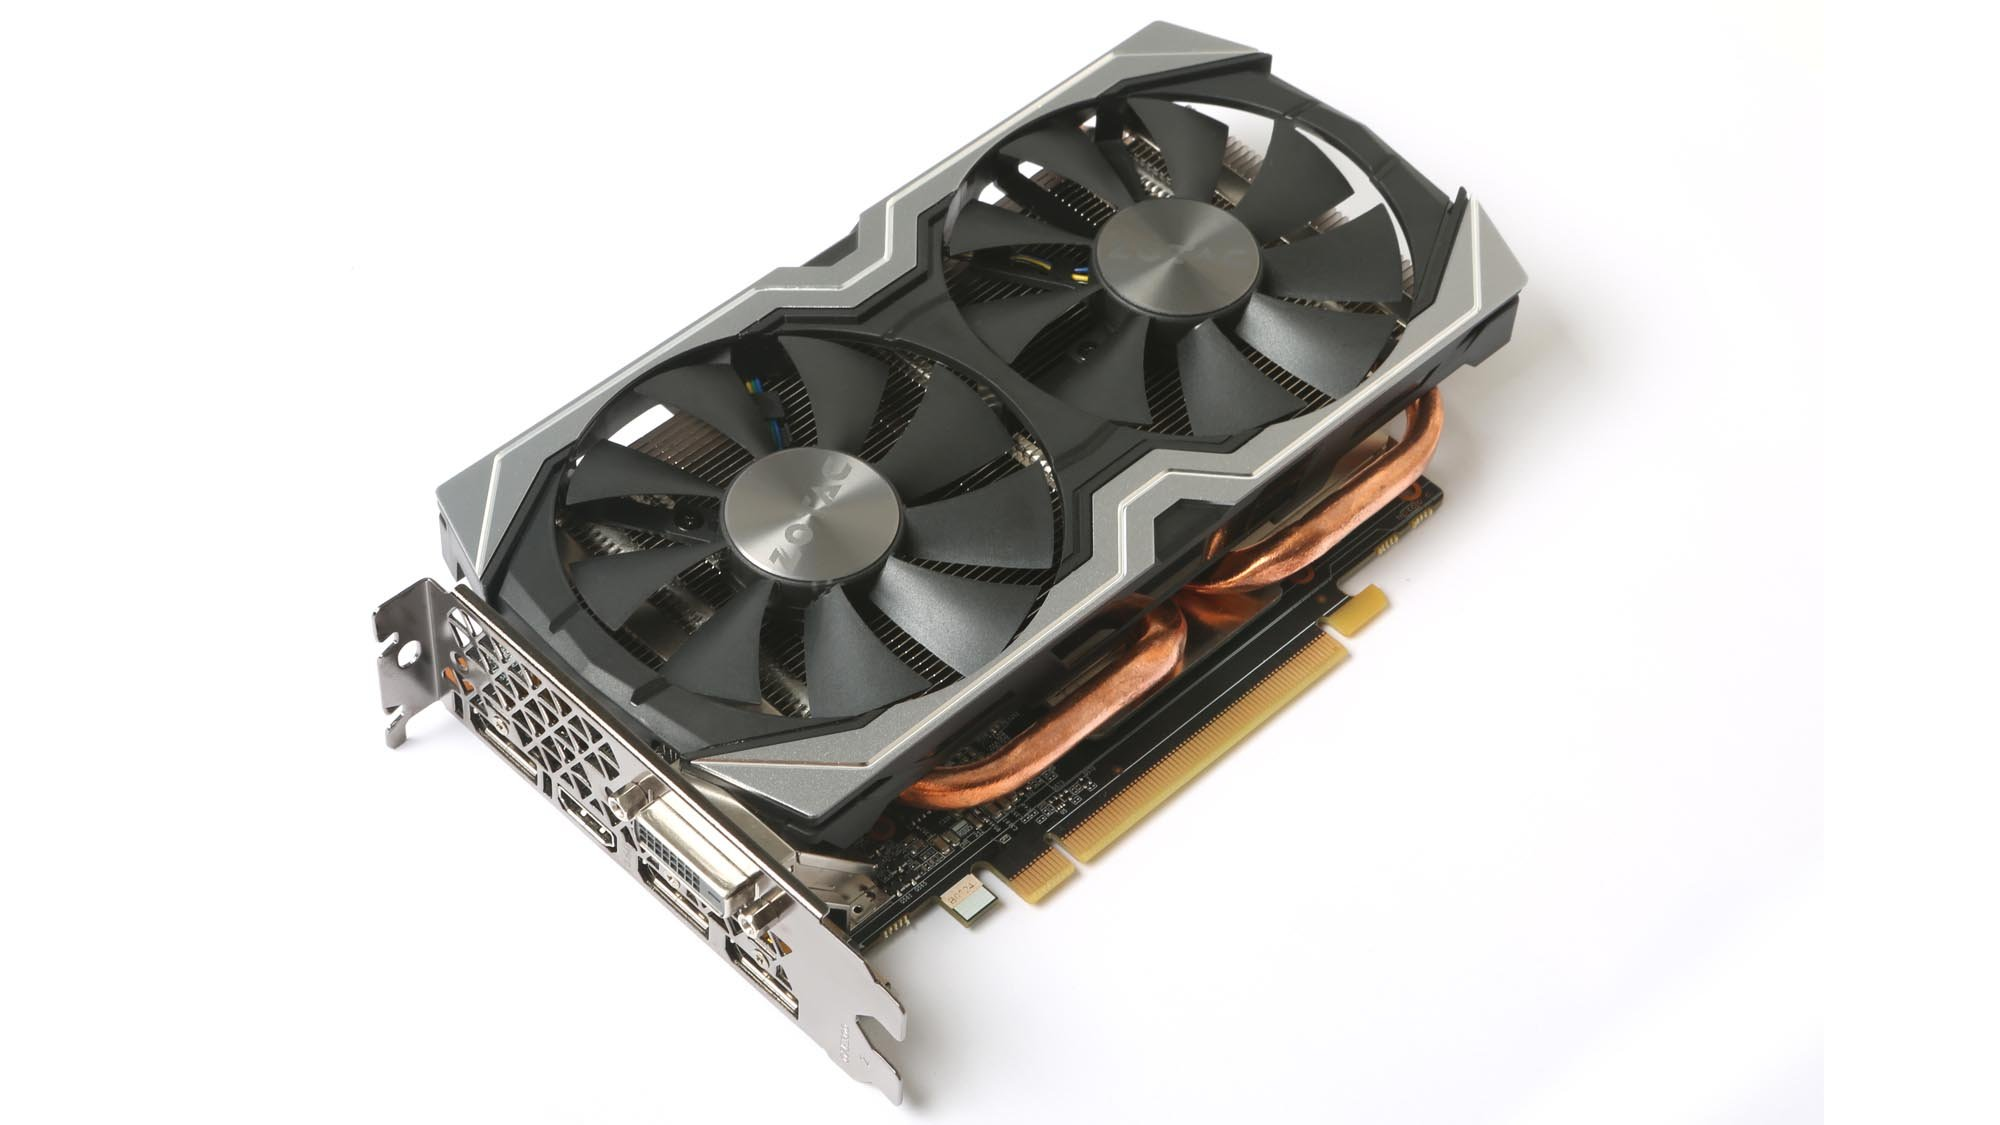 Nvidia GeForce GTX 1060 6GB review: The sub-£300 champion